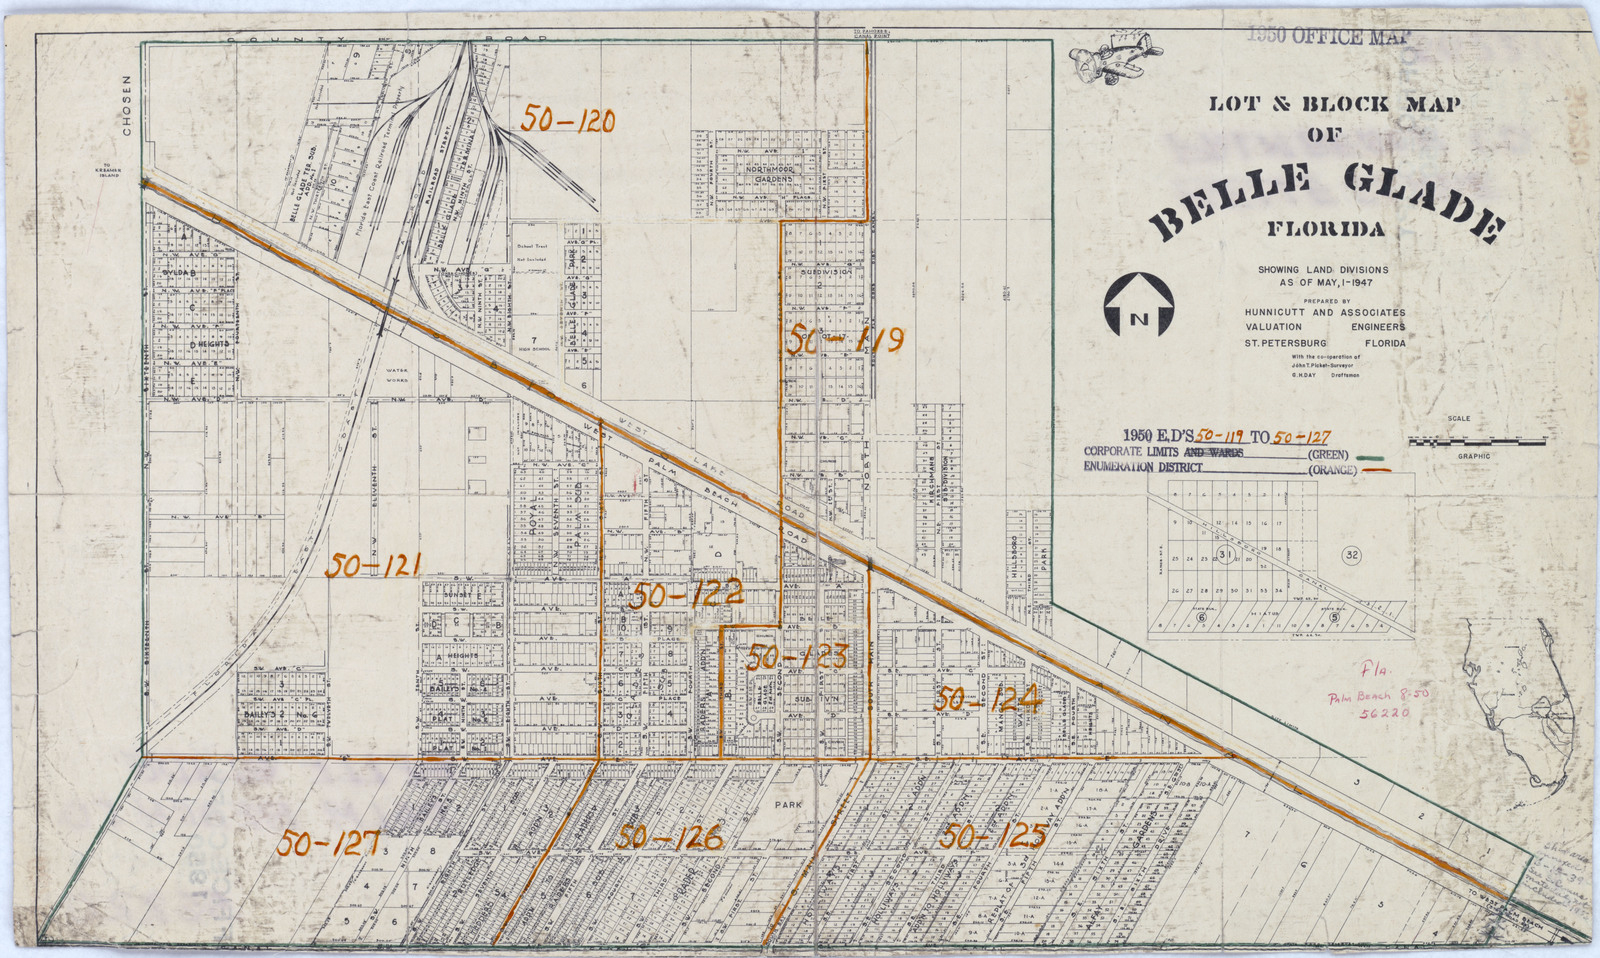 1950 Census Enumeration District Maps - Florida (Fl) - Palm Beach - Belle Glade Florida Map